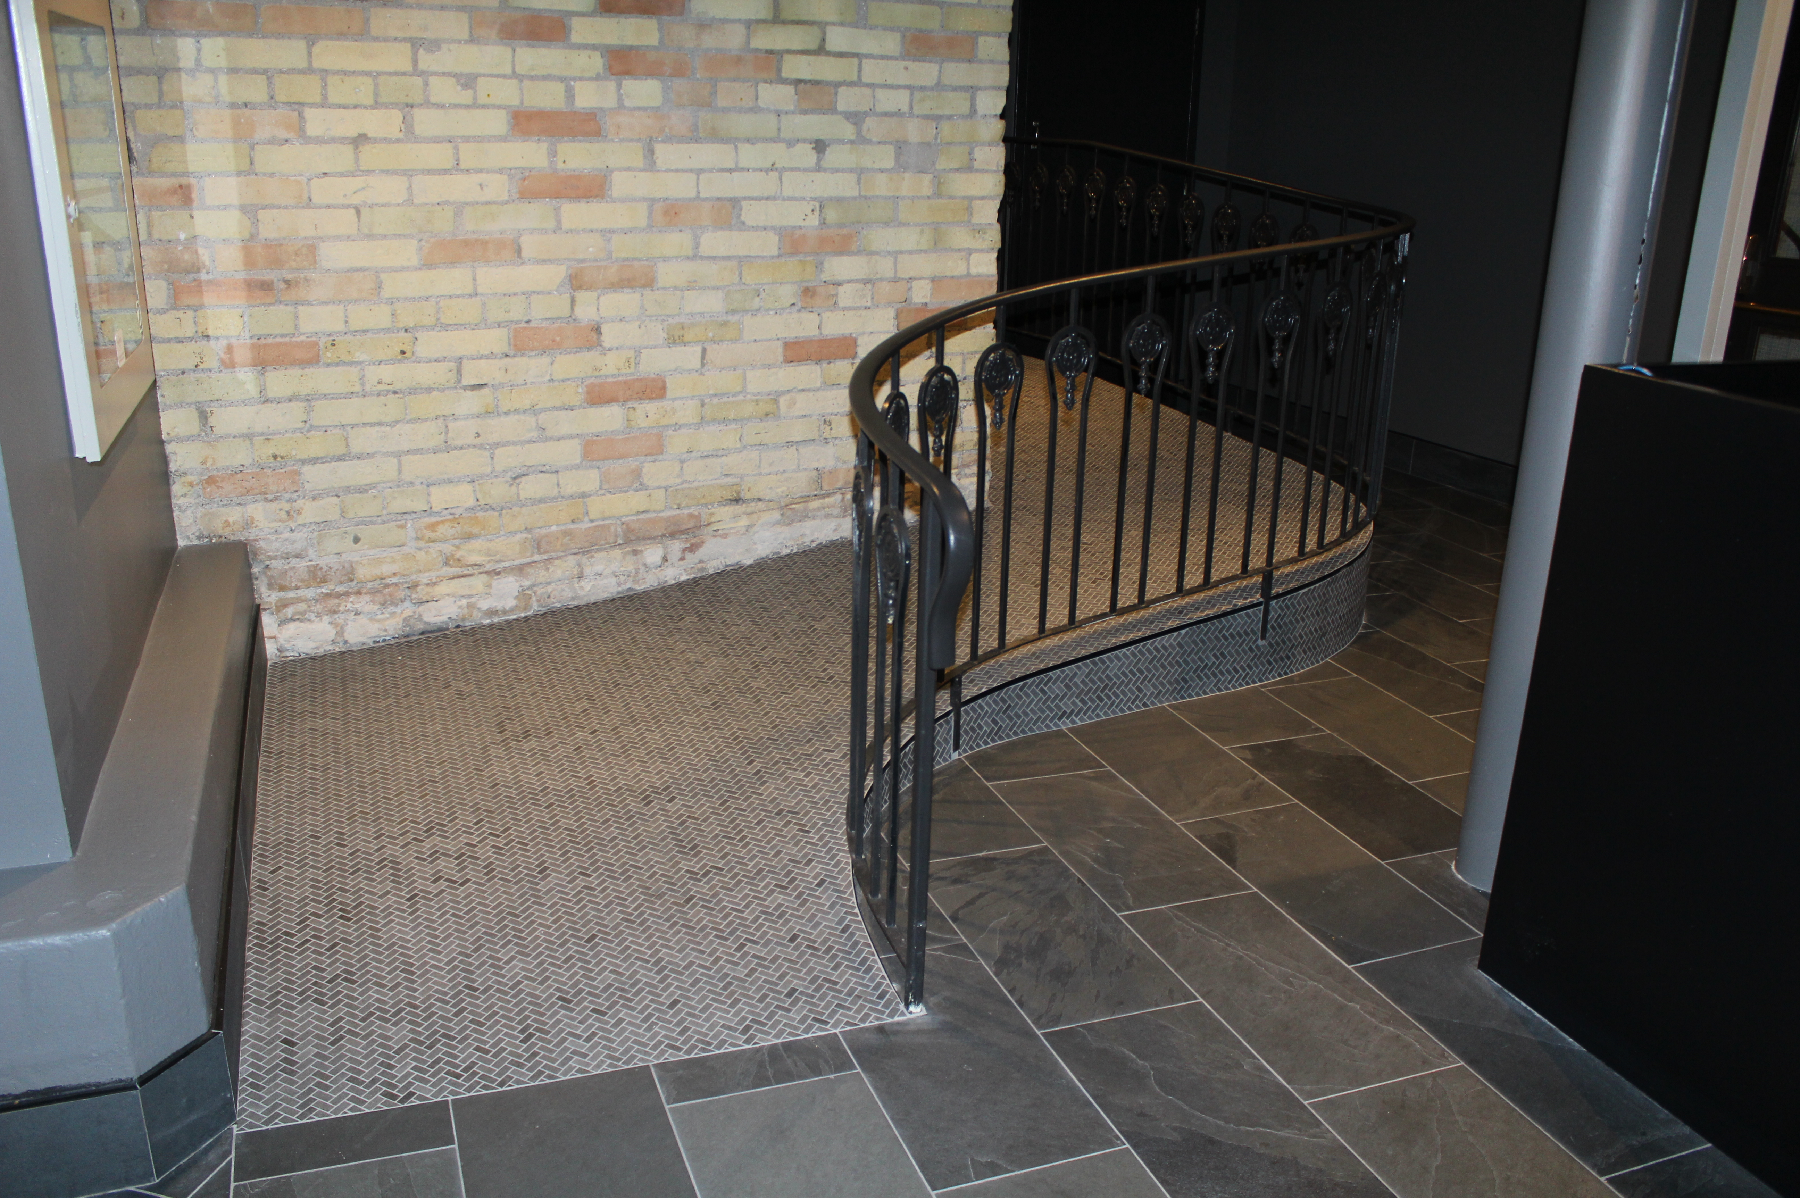 Commercial Gallery Grand Valley Tile Amp Flooring